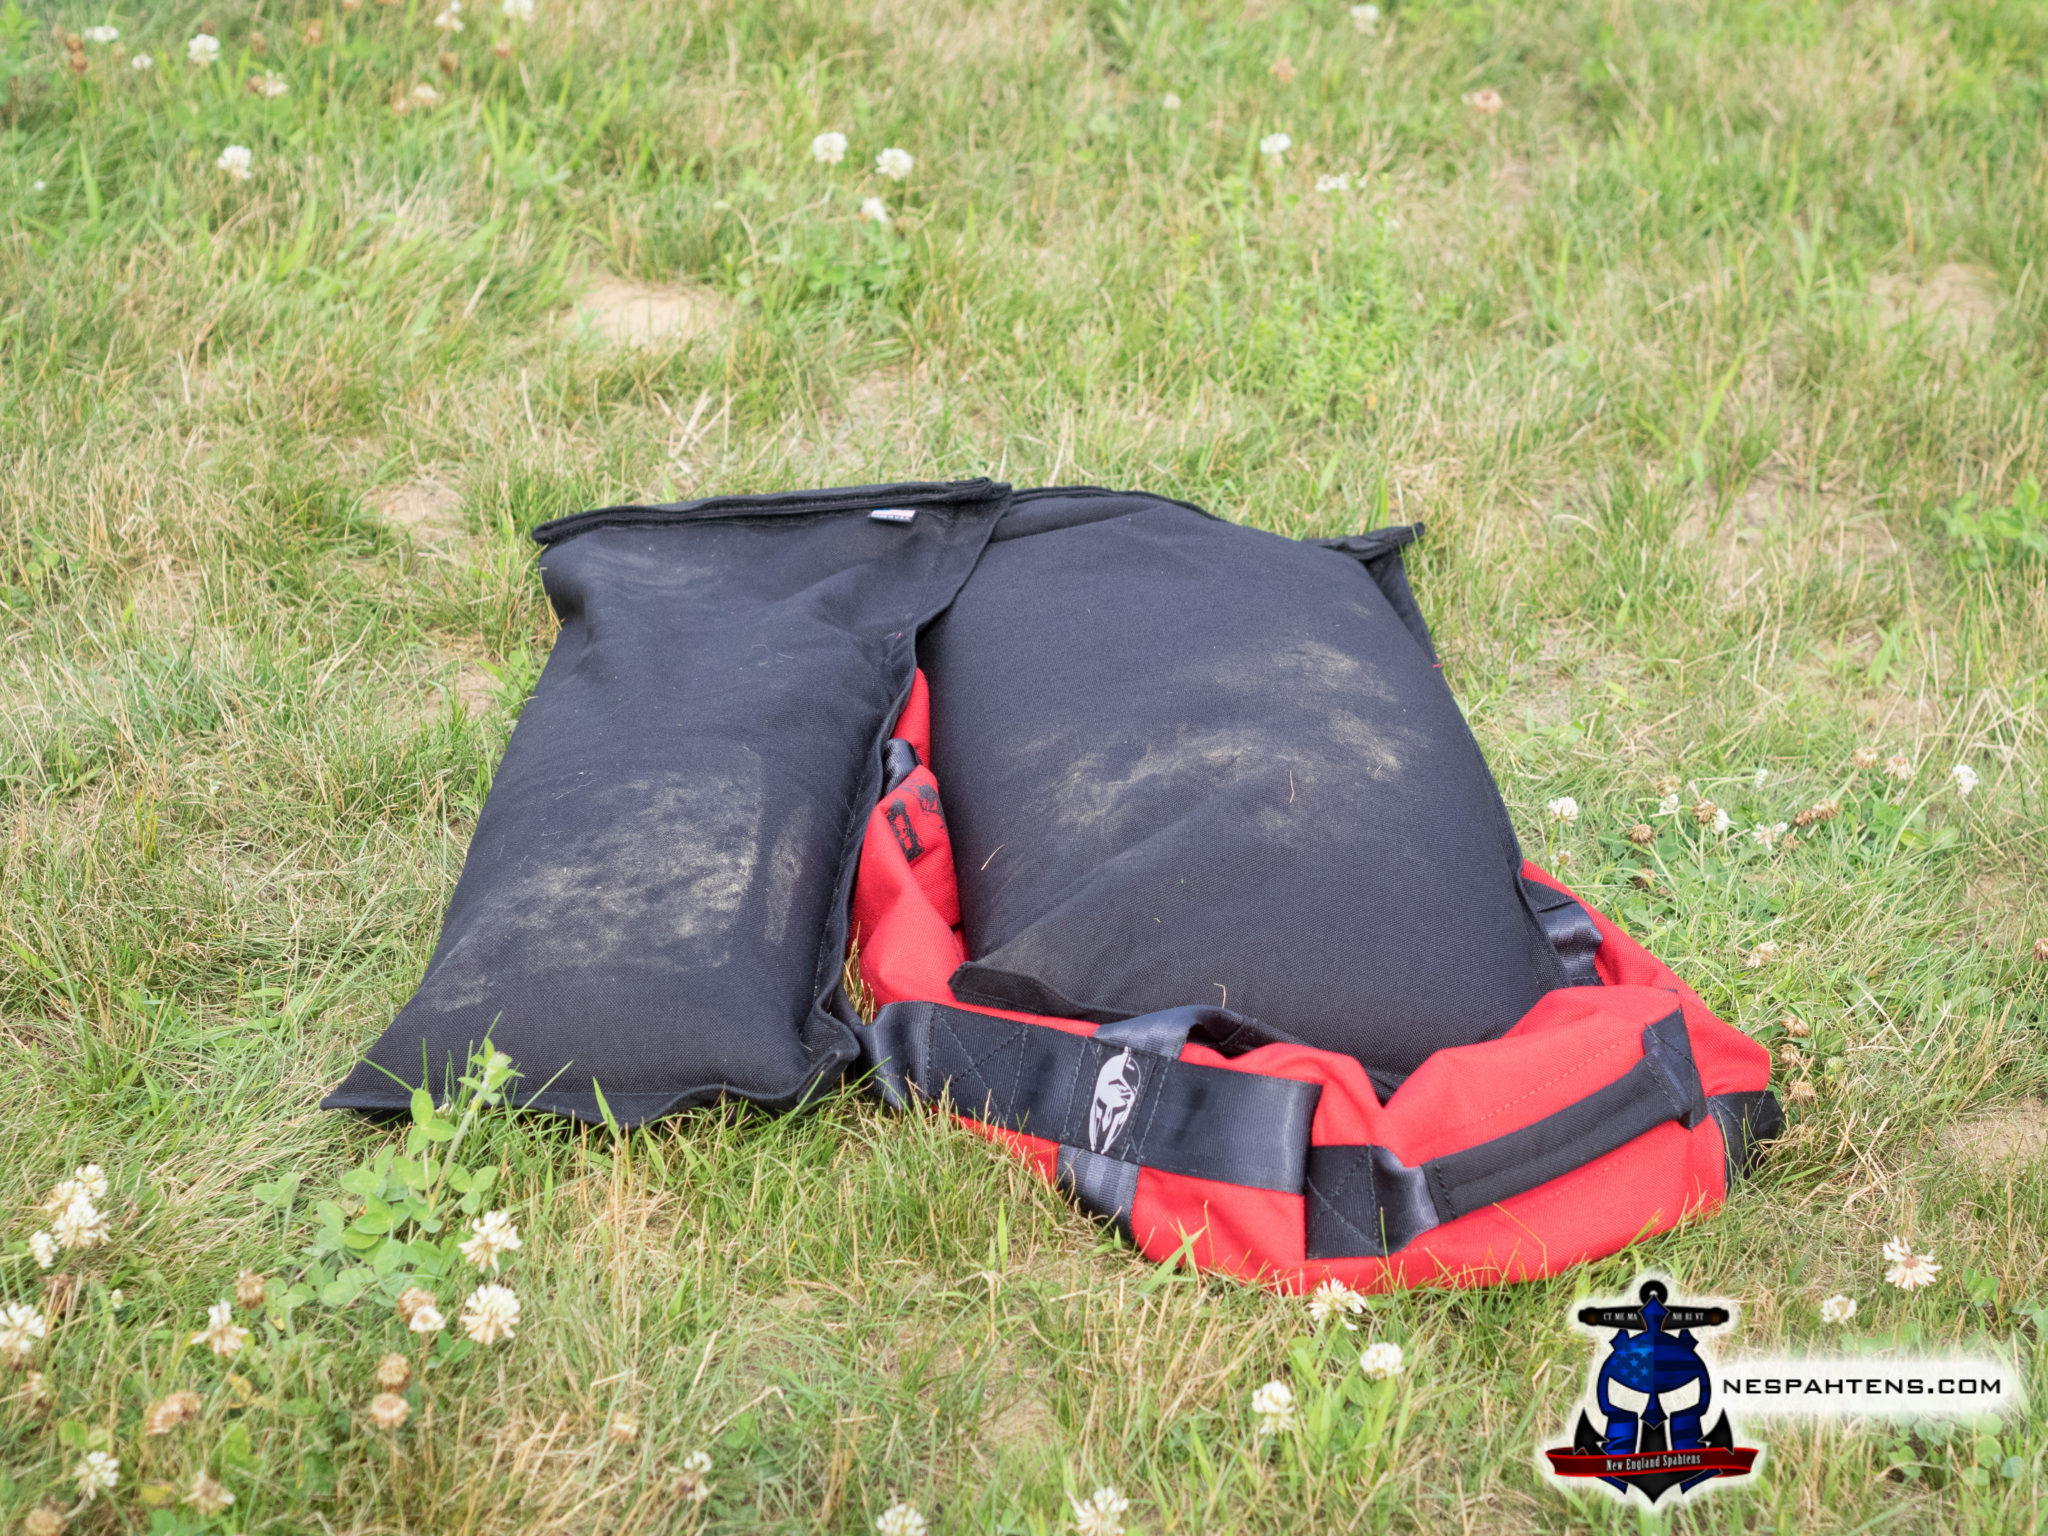 Review Brute Force Sandbags New England Spahtens